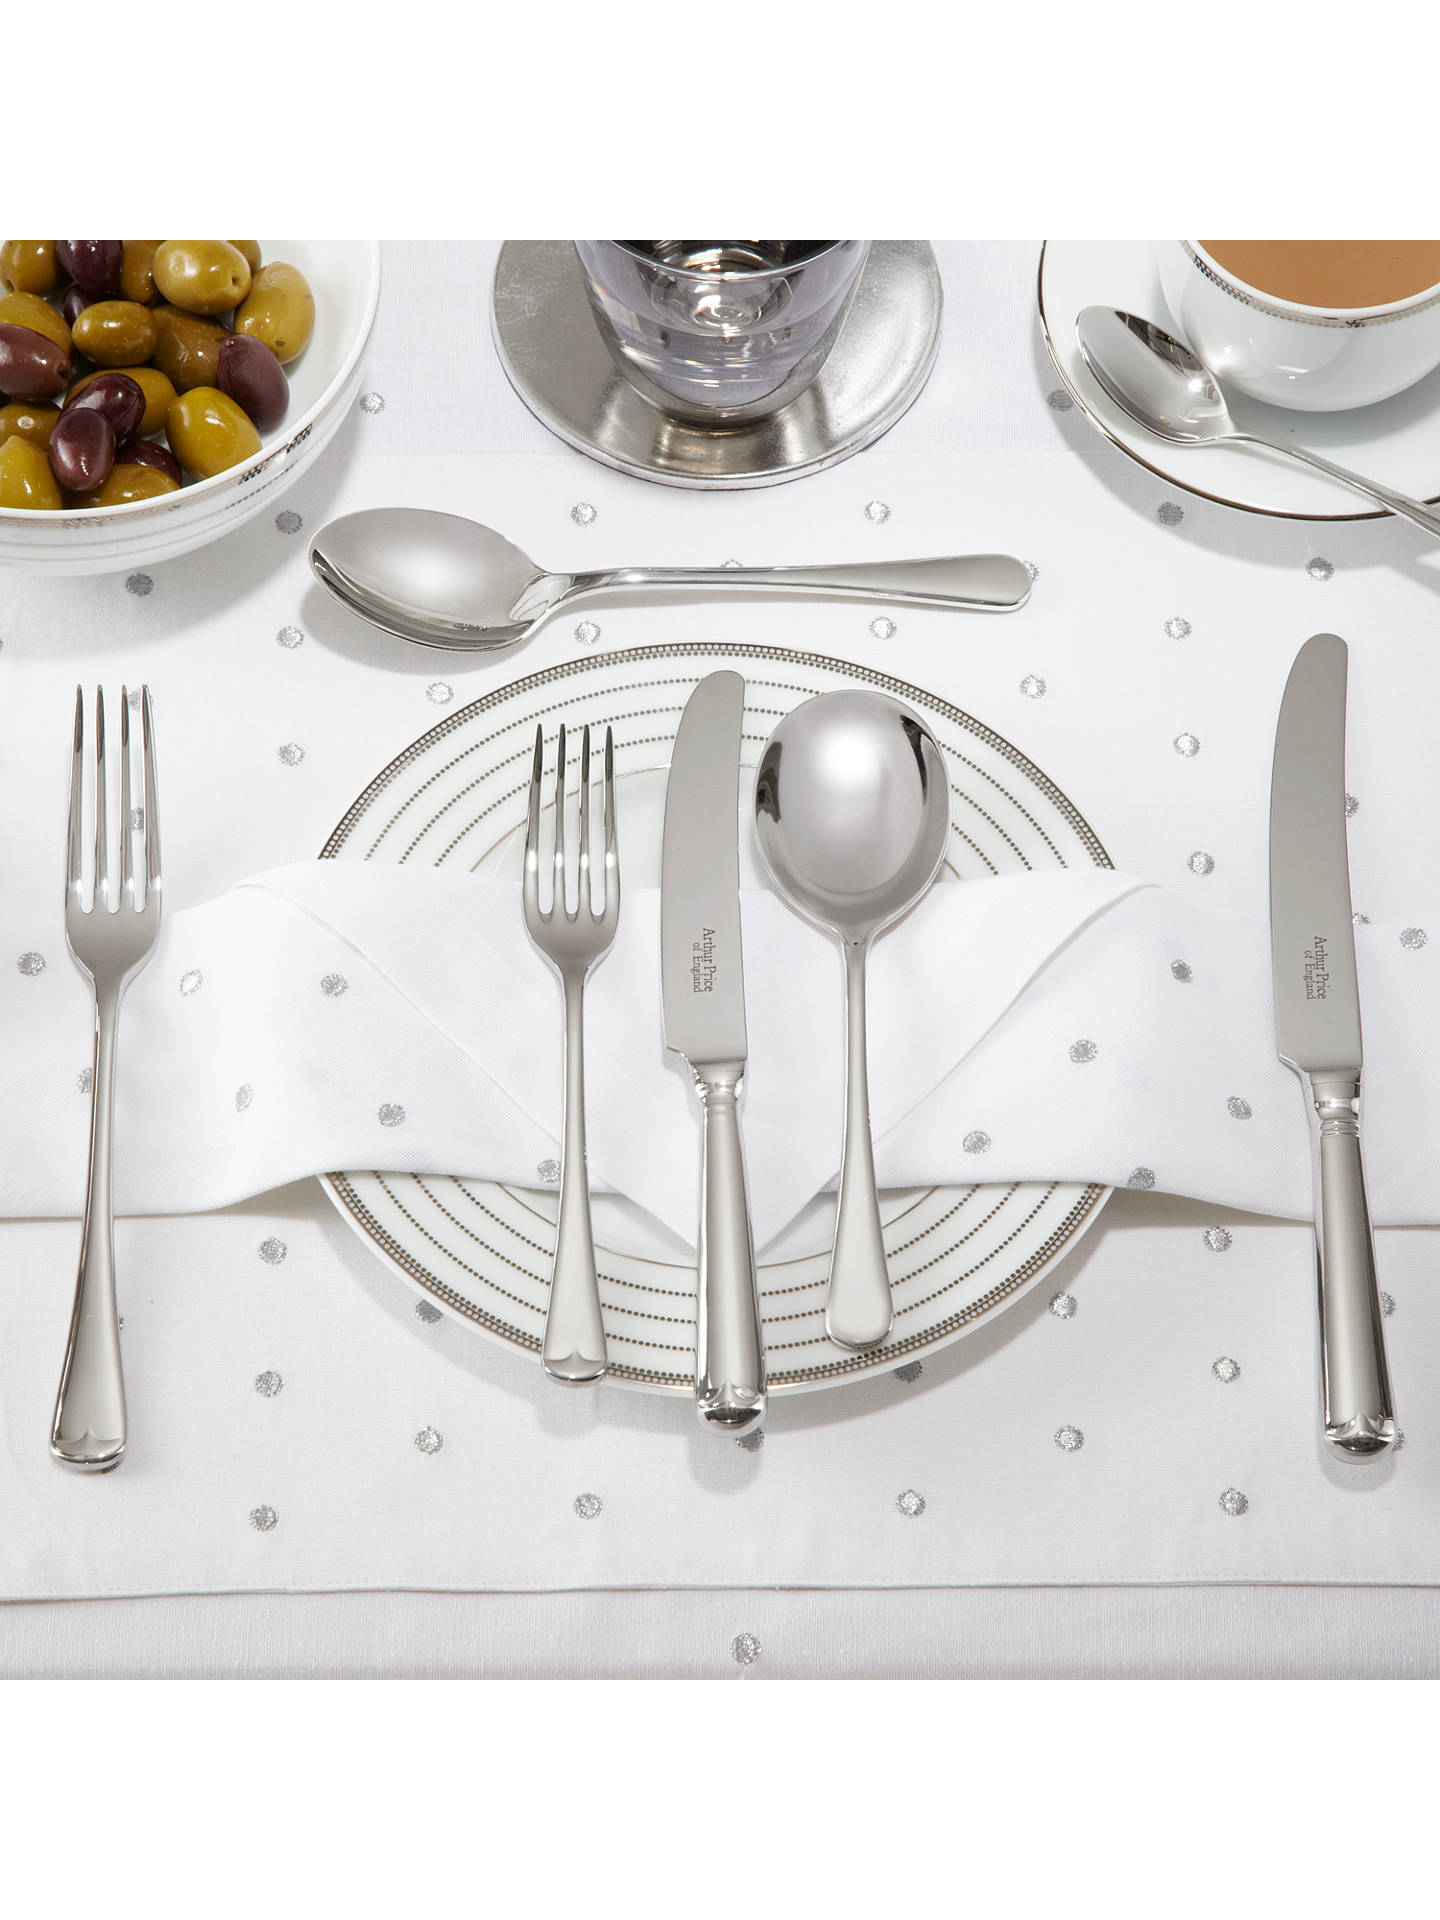 BuyArthur Price Old English Dessert Fork Online at johnlewis.com